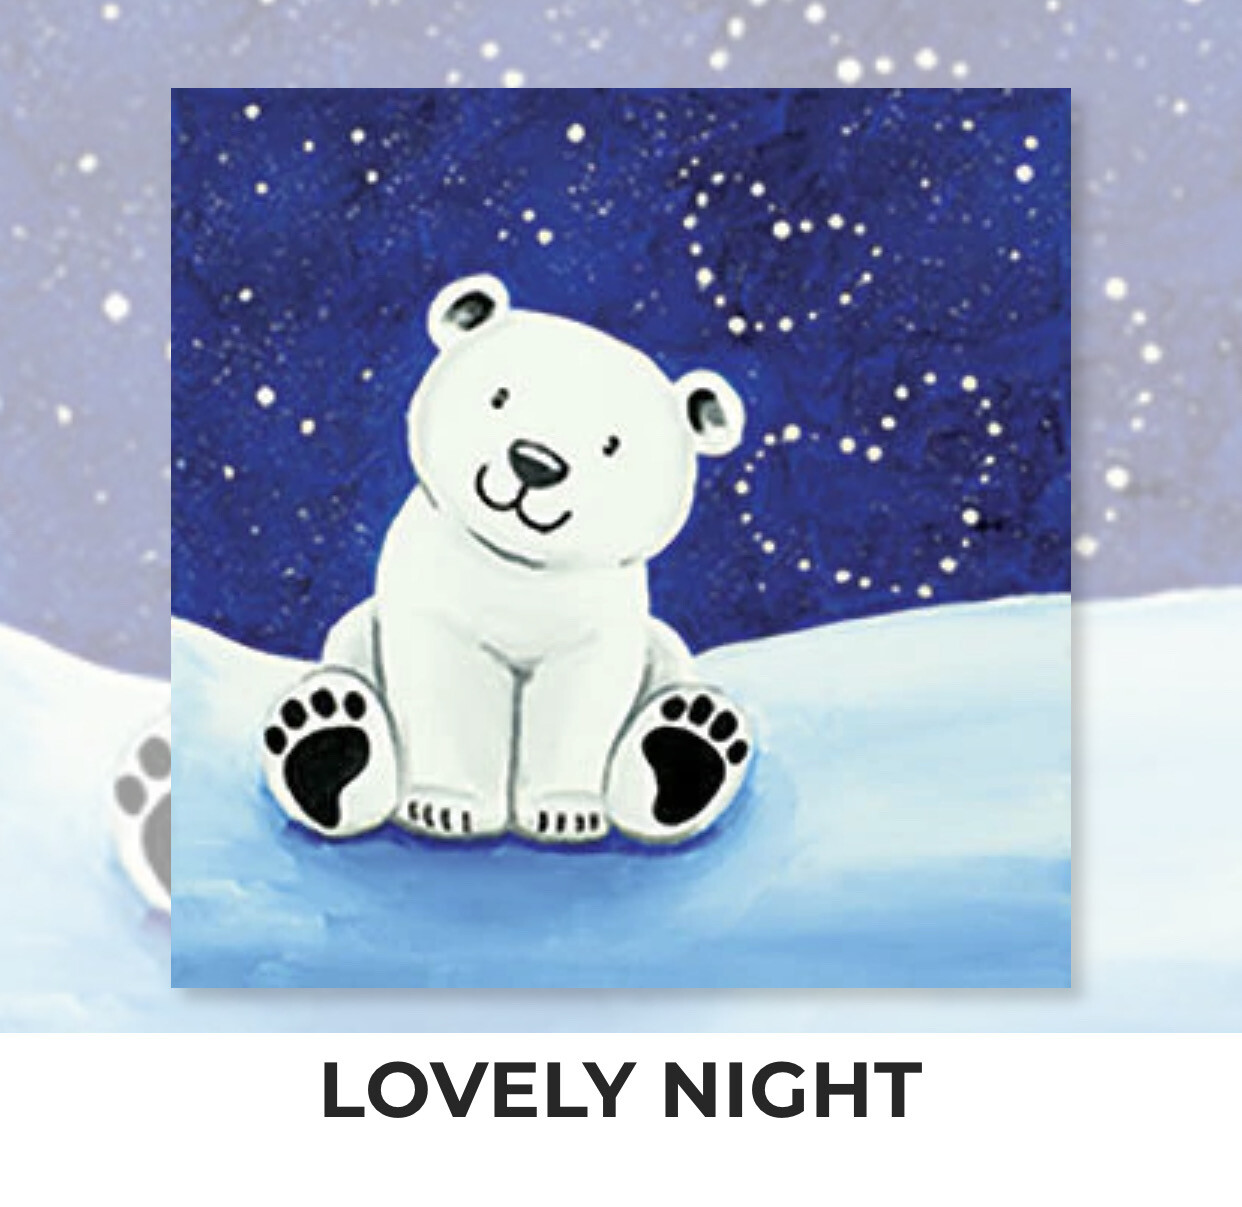 Lovely Night KIDS Acrylic Paint On Canvas DIY Art Kit - 3 Week Special Order